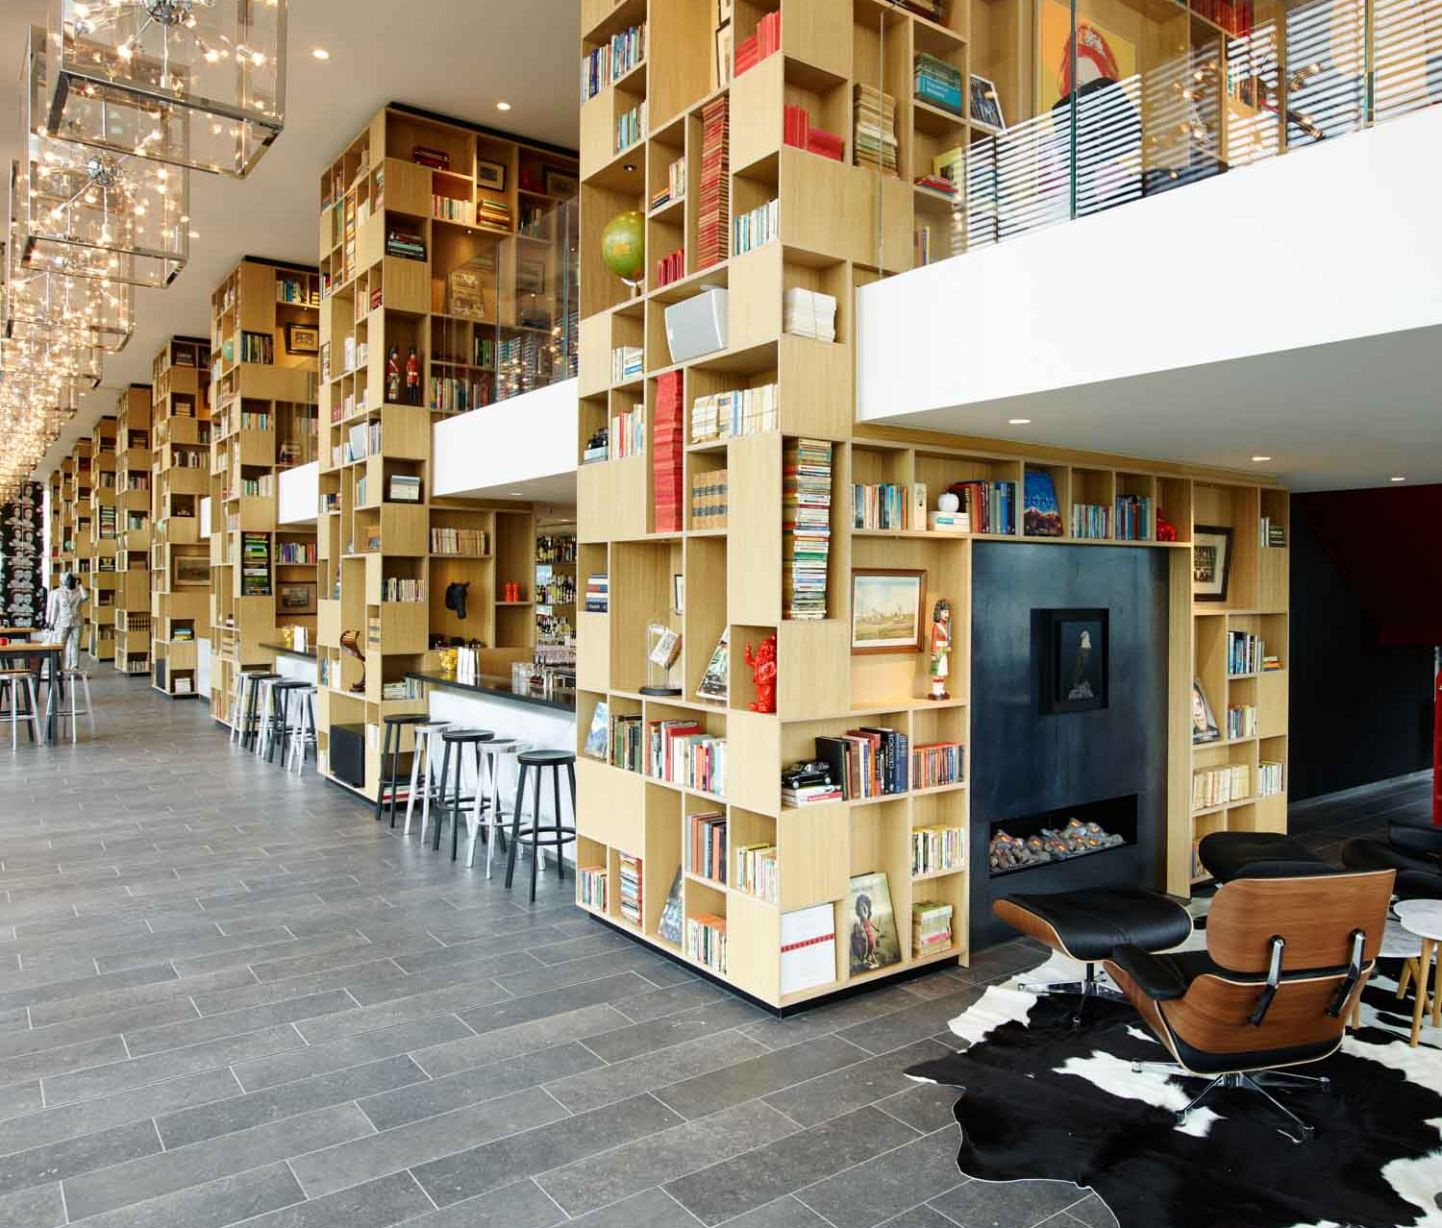 renegade-generation-discover-you-masterclass-mid-career-workshop-citizenm-london-8.jpg